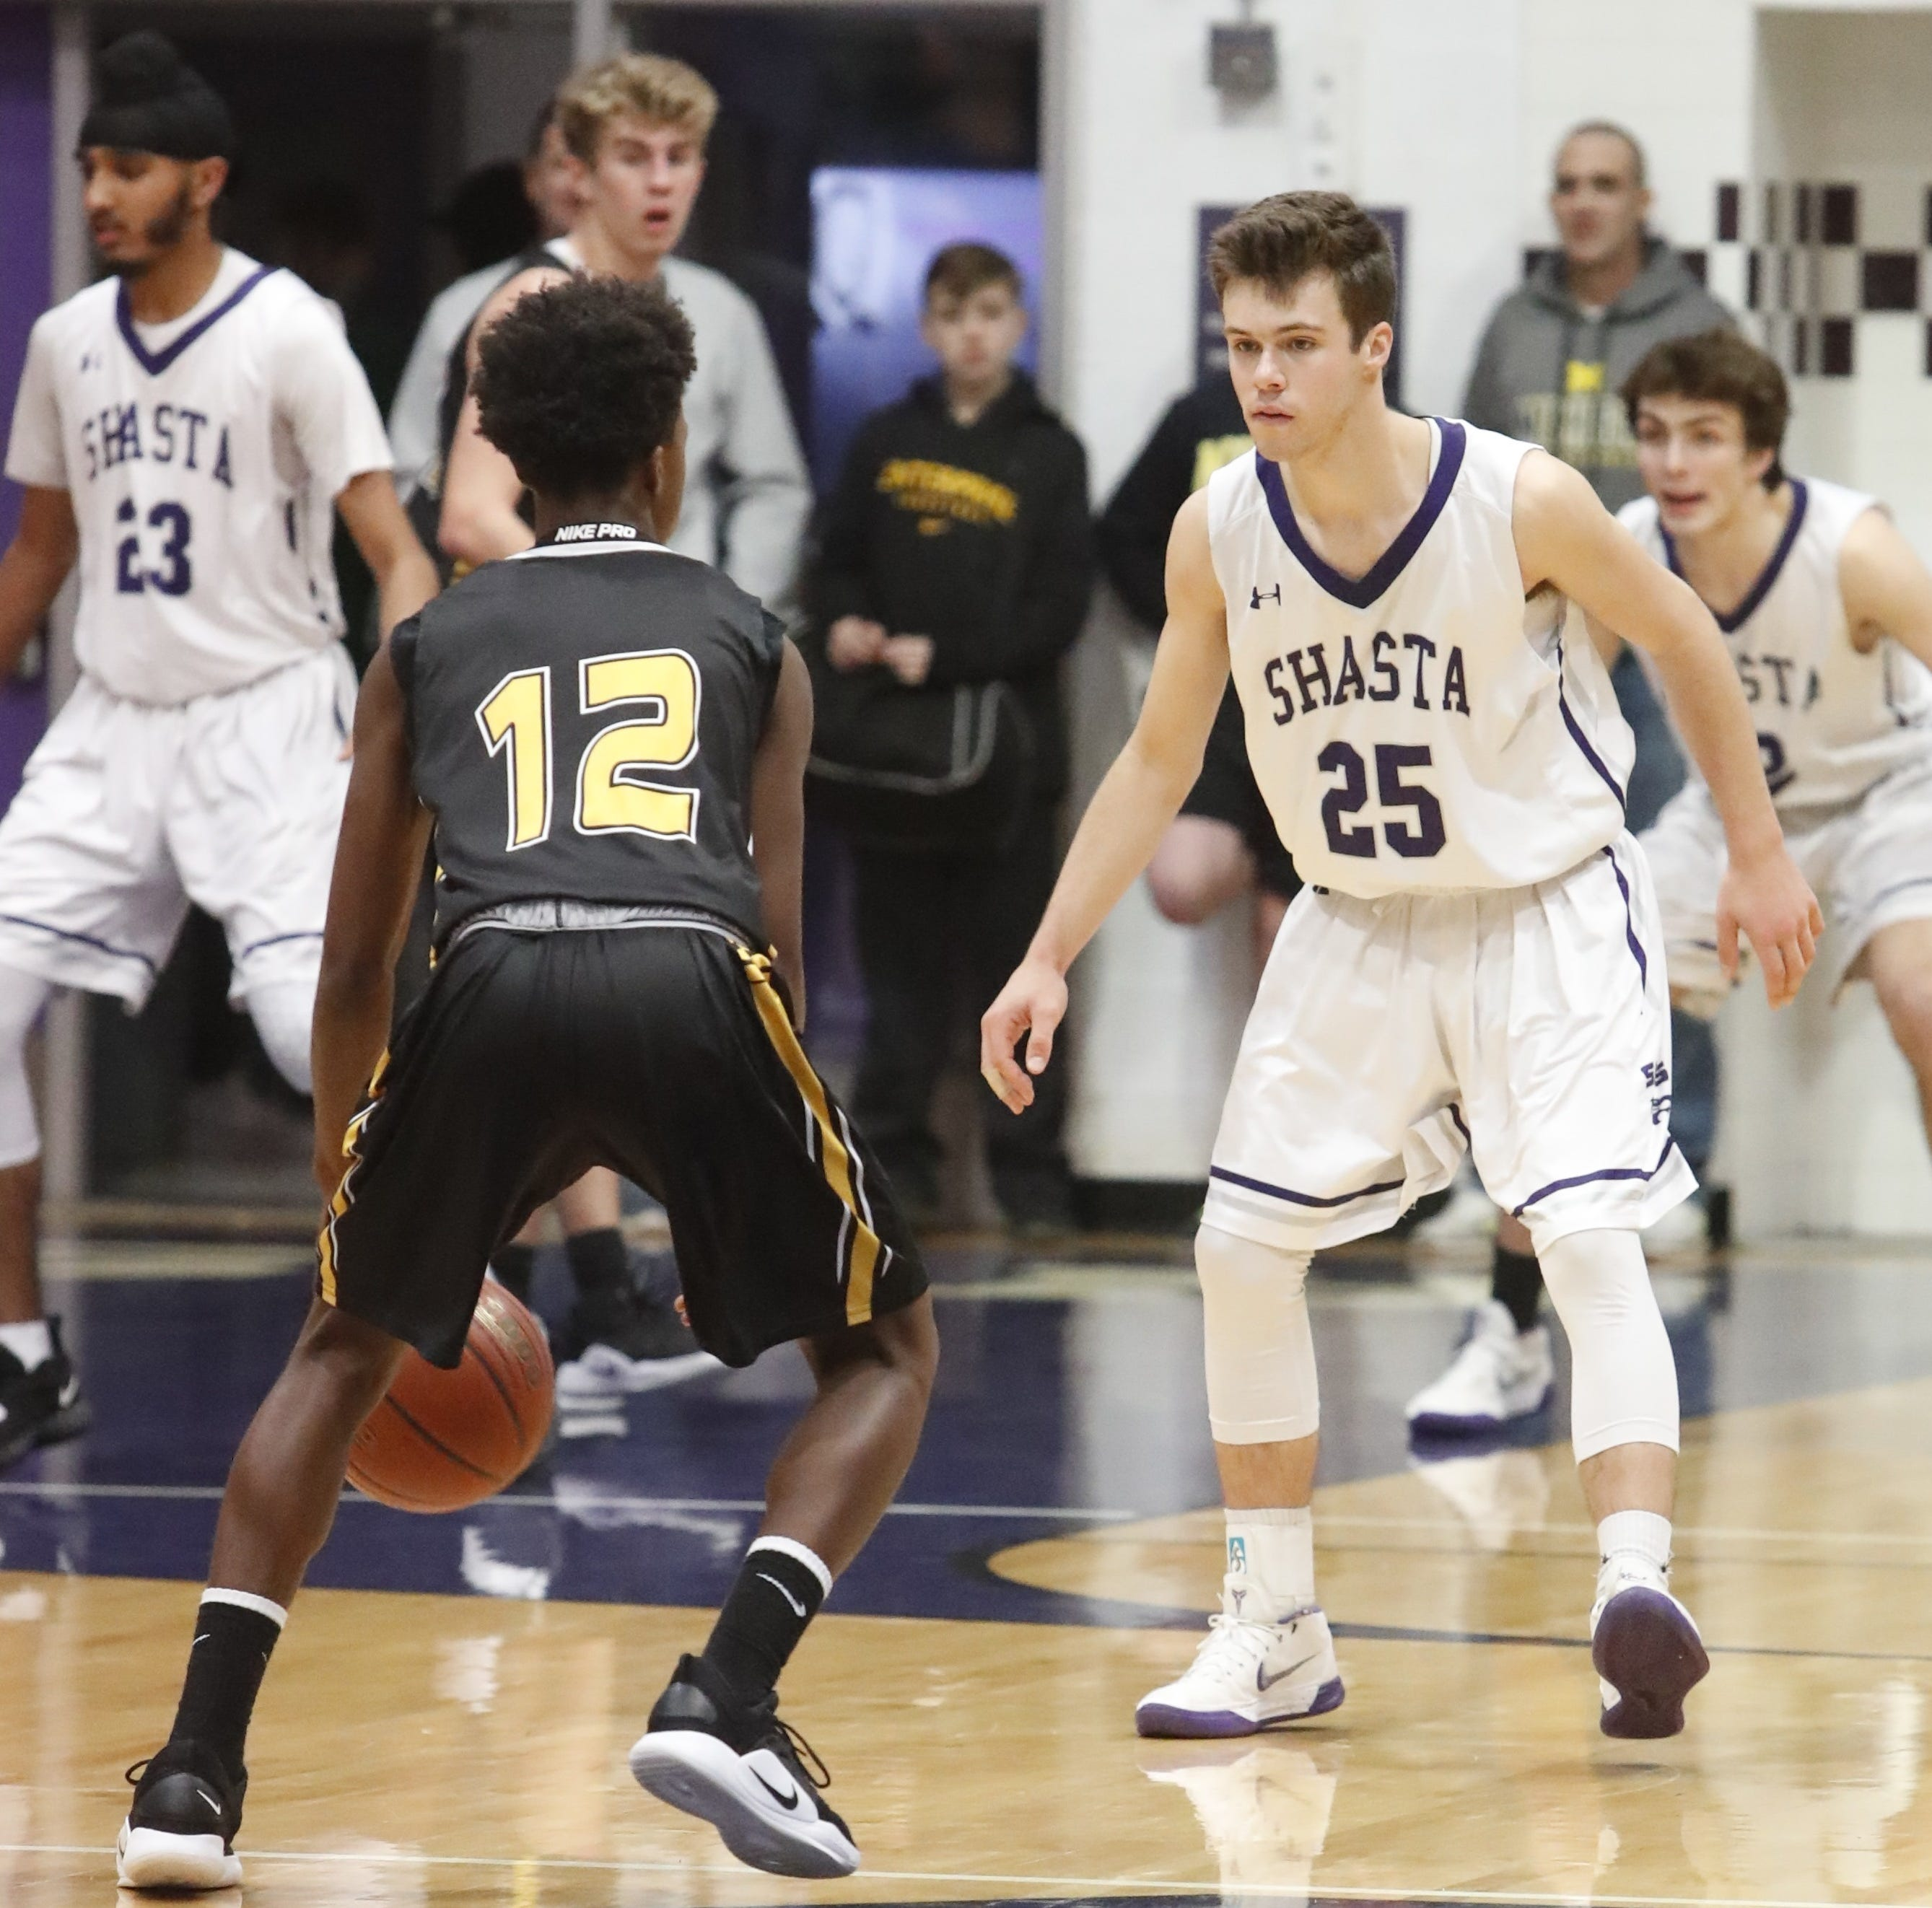 Playoff central: Local basketball teams play in semifinals, U-Prep soccer making deep run